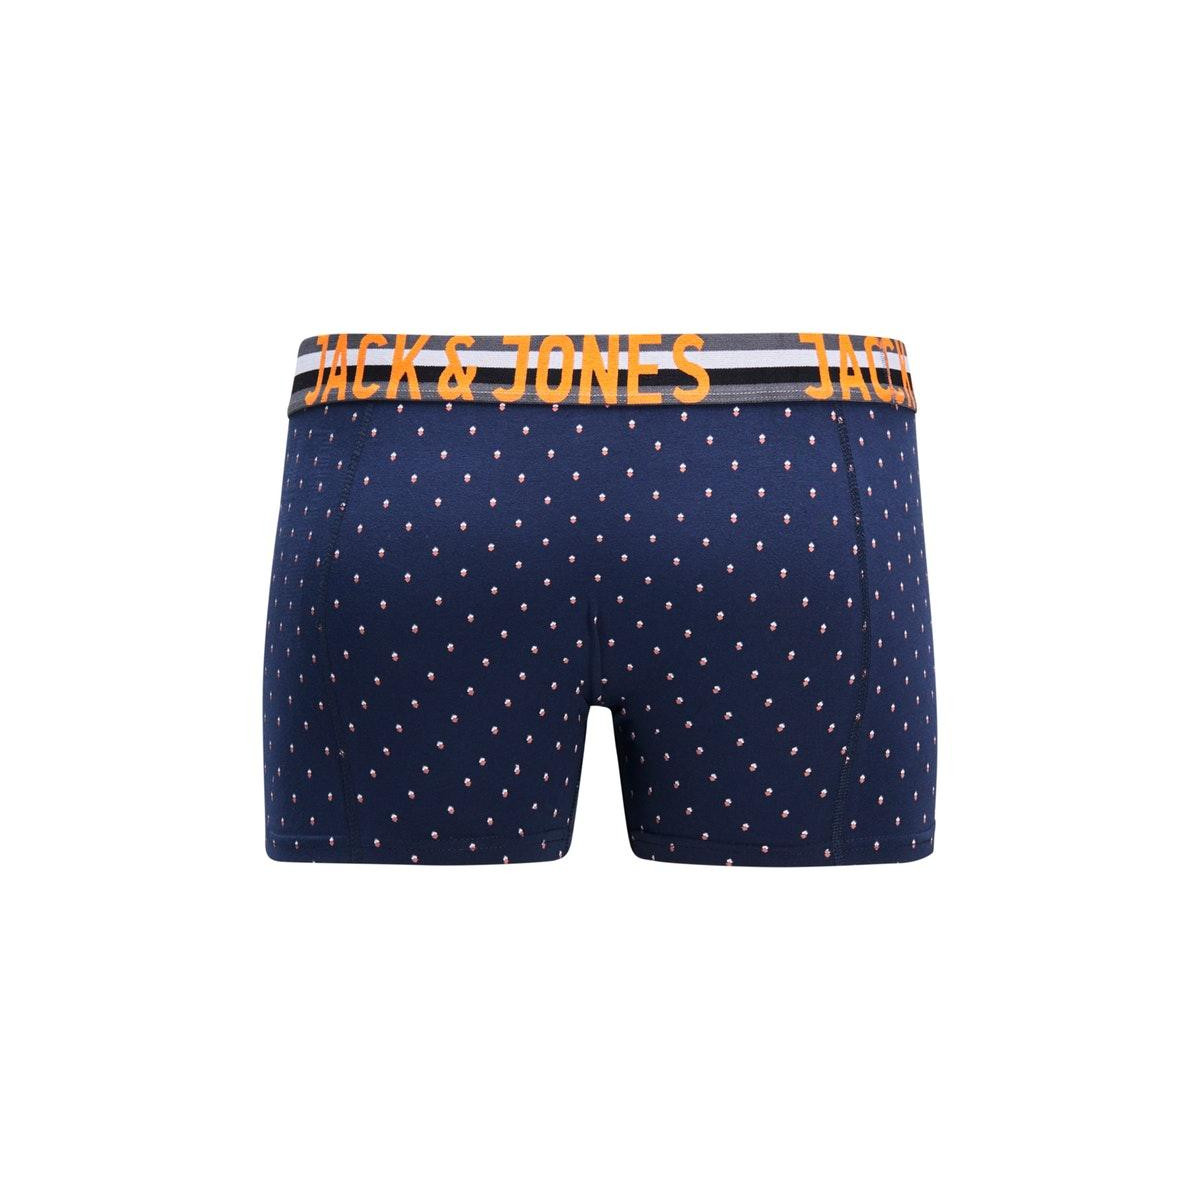 jachenrik trunks 3 pack noos 12151351 jack & jones ondergoed black/navy blazer